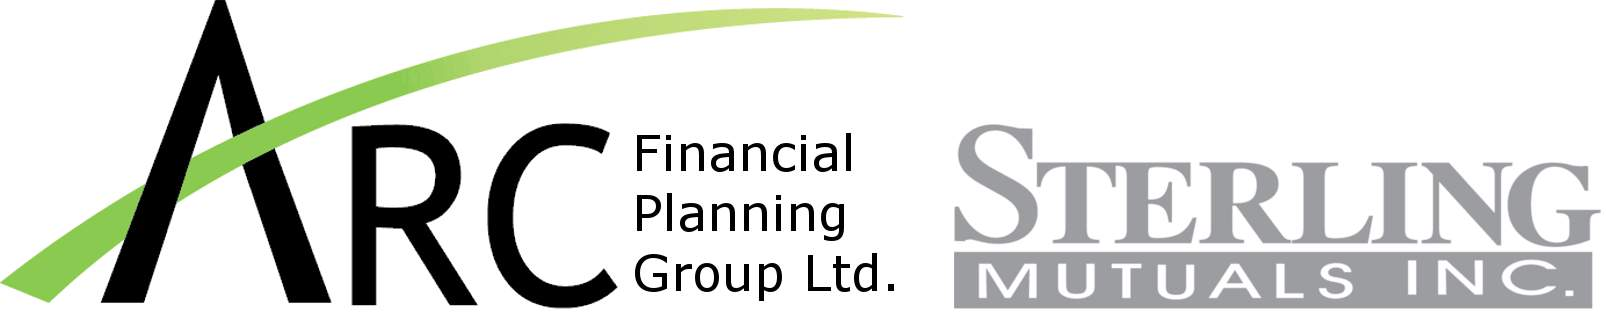 Arc Financial Planning Group